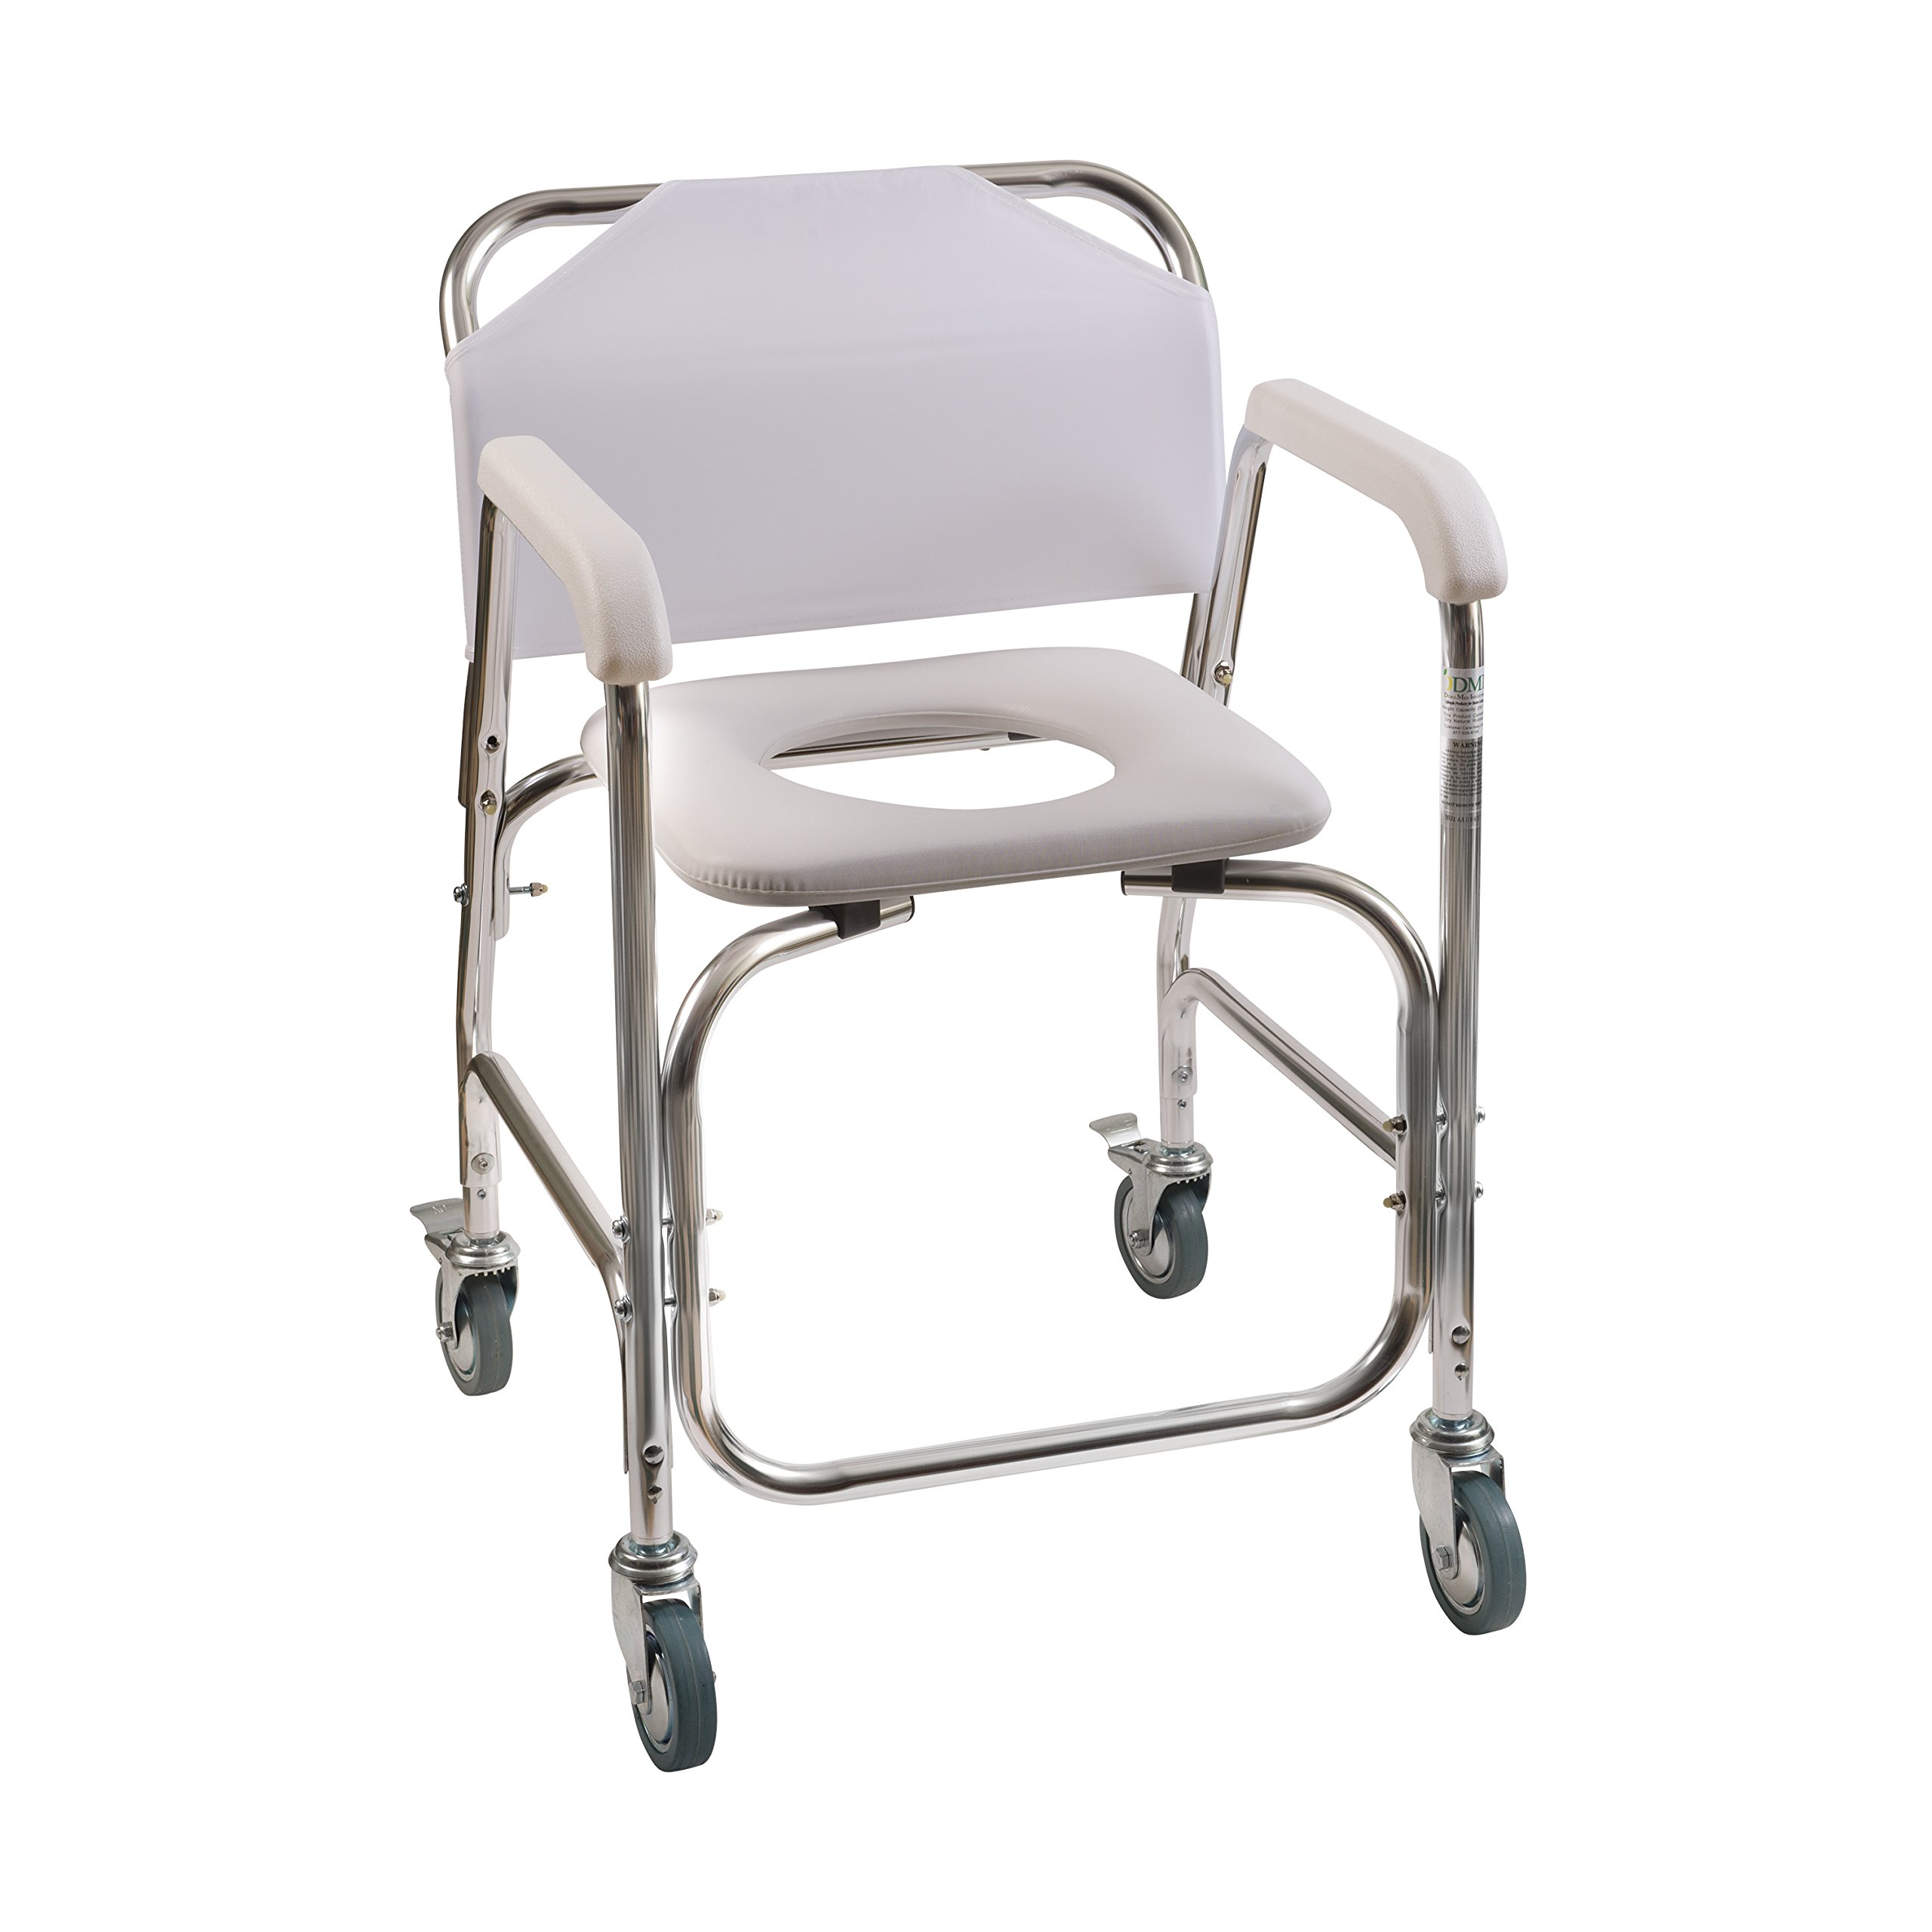 seats mobile chair shower medical product bathroom chairs roma home